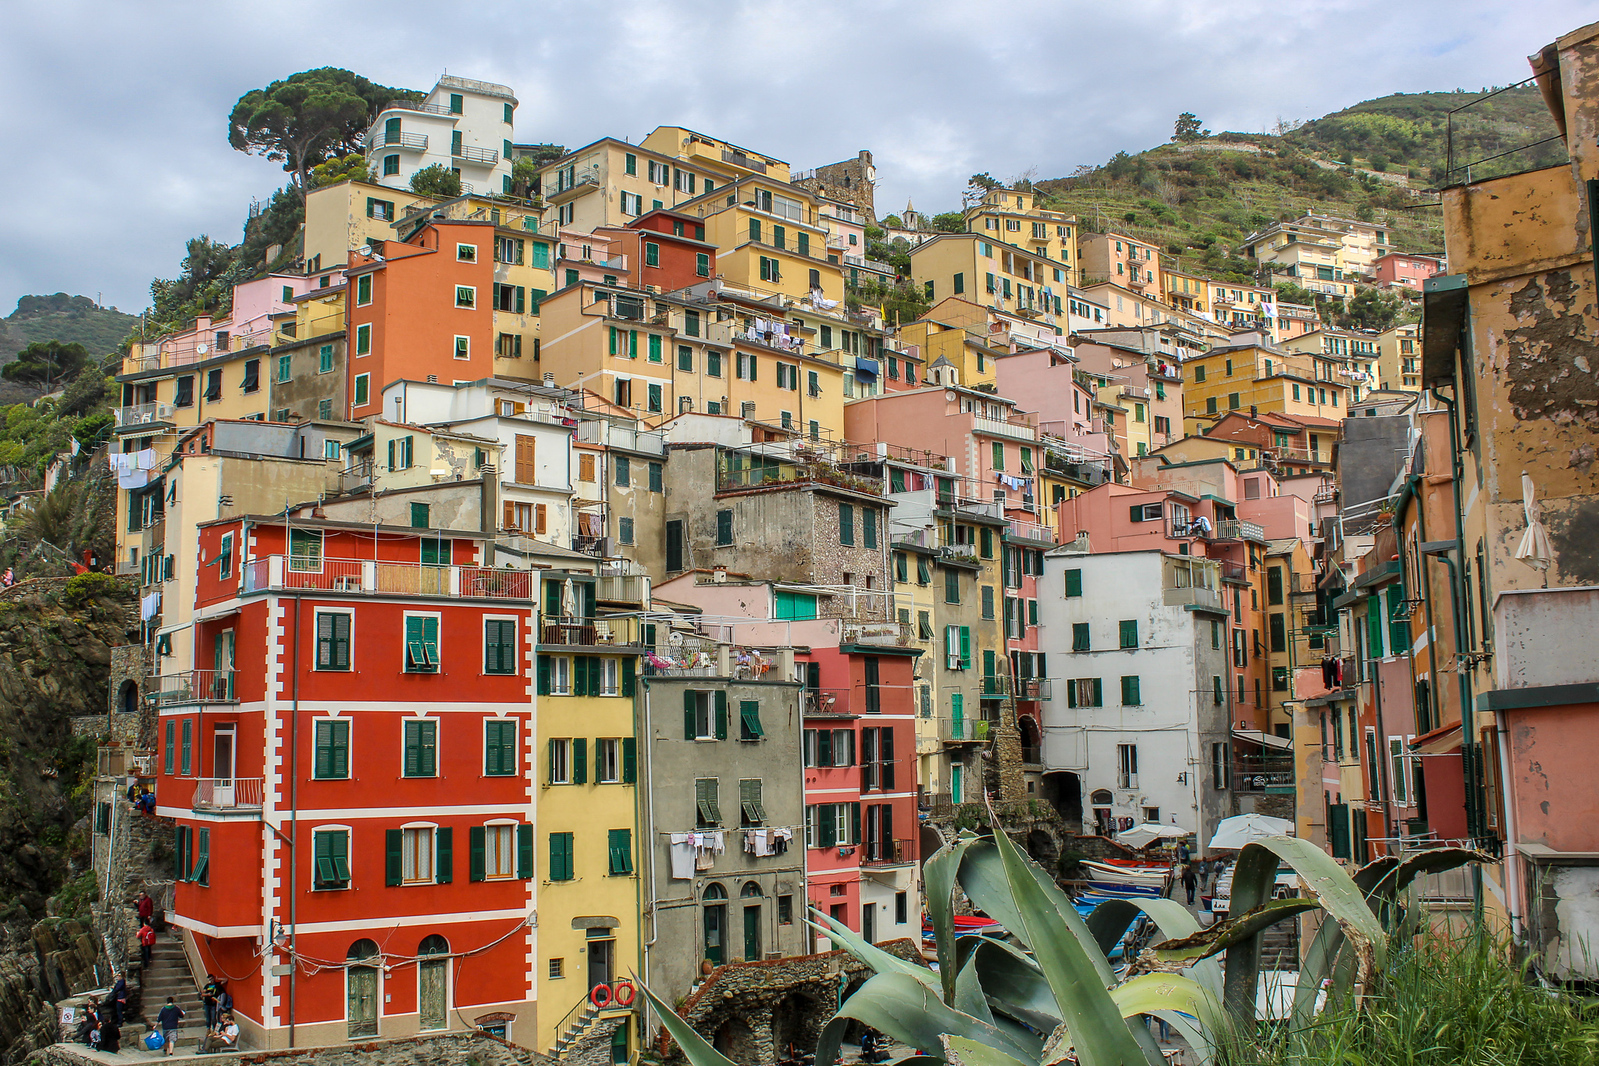 2 days in cinque terre gives you plenty of time in the villages